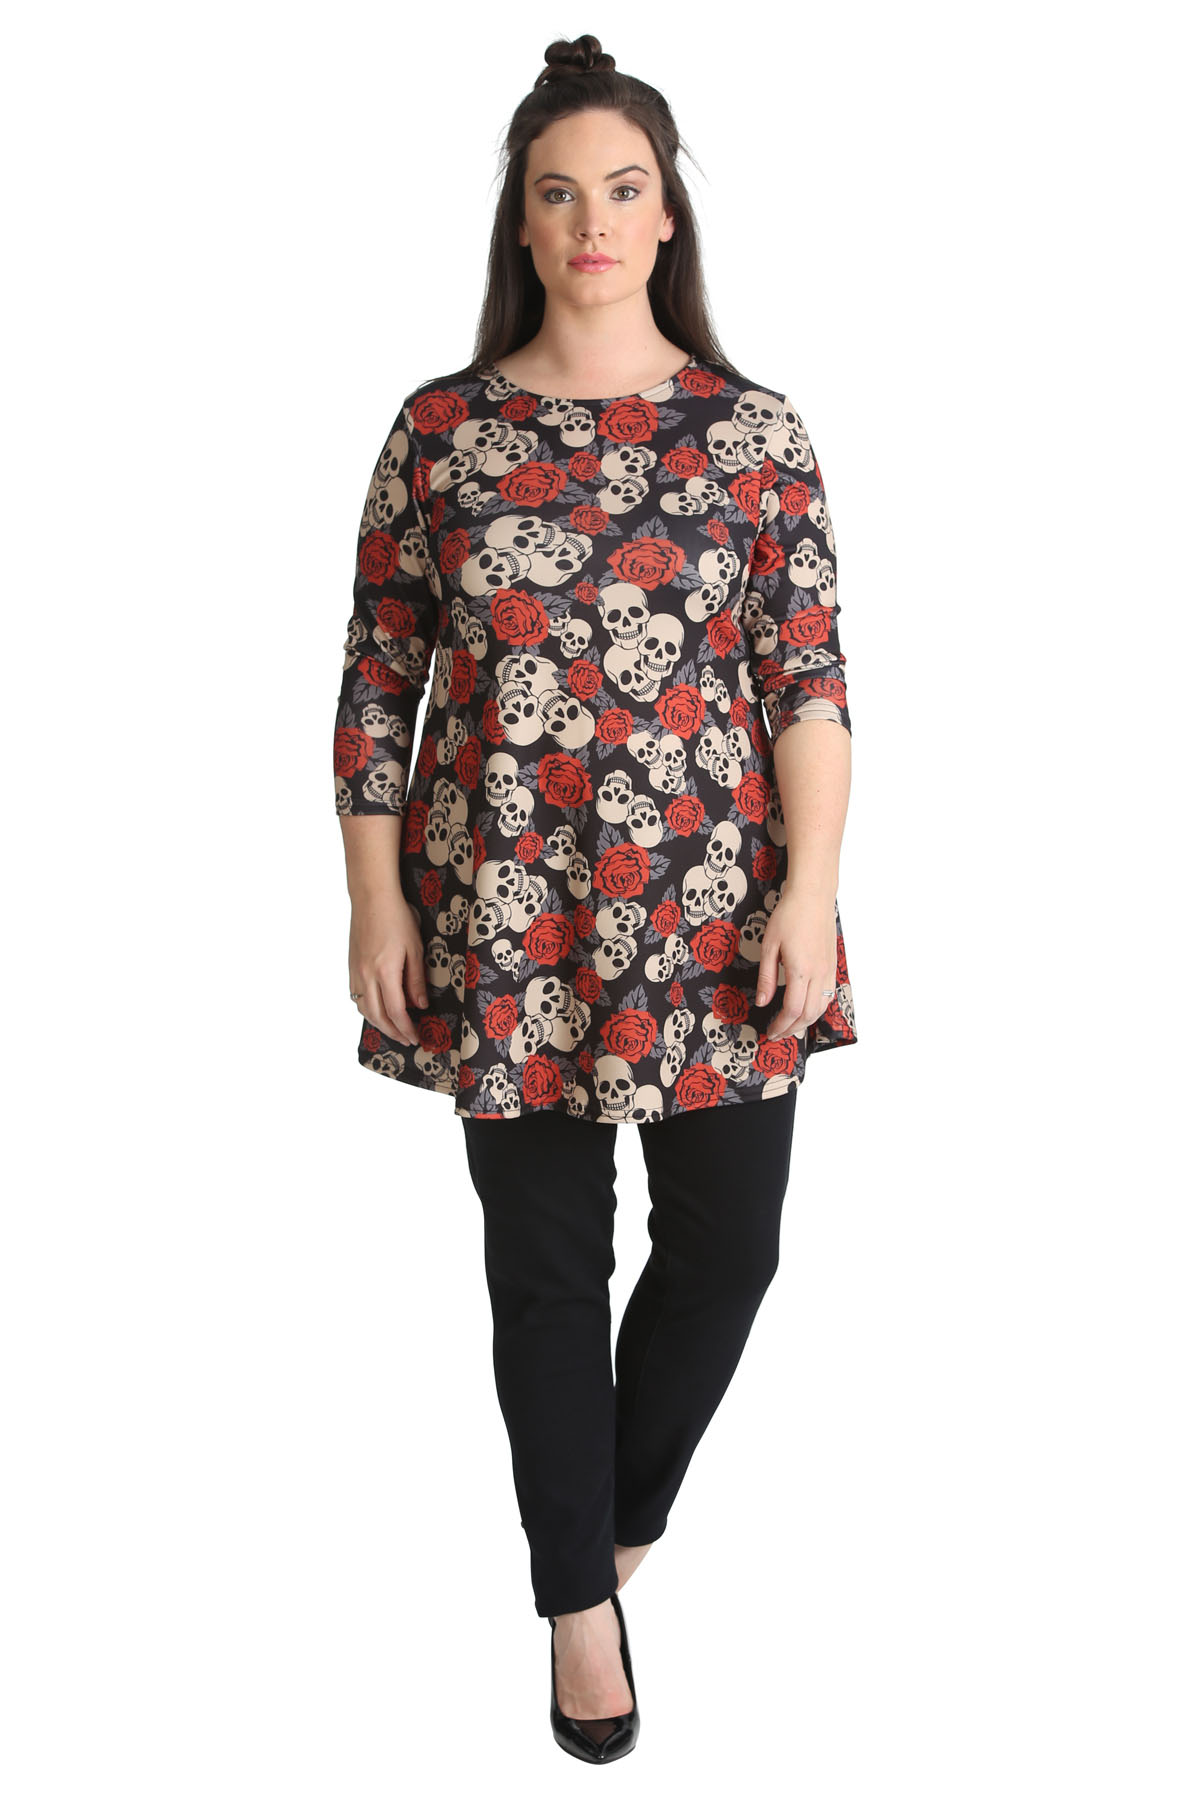 Find great deals on eBay for plus size skull top. Shop with confidence.